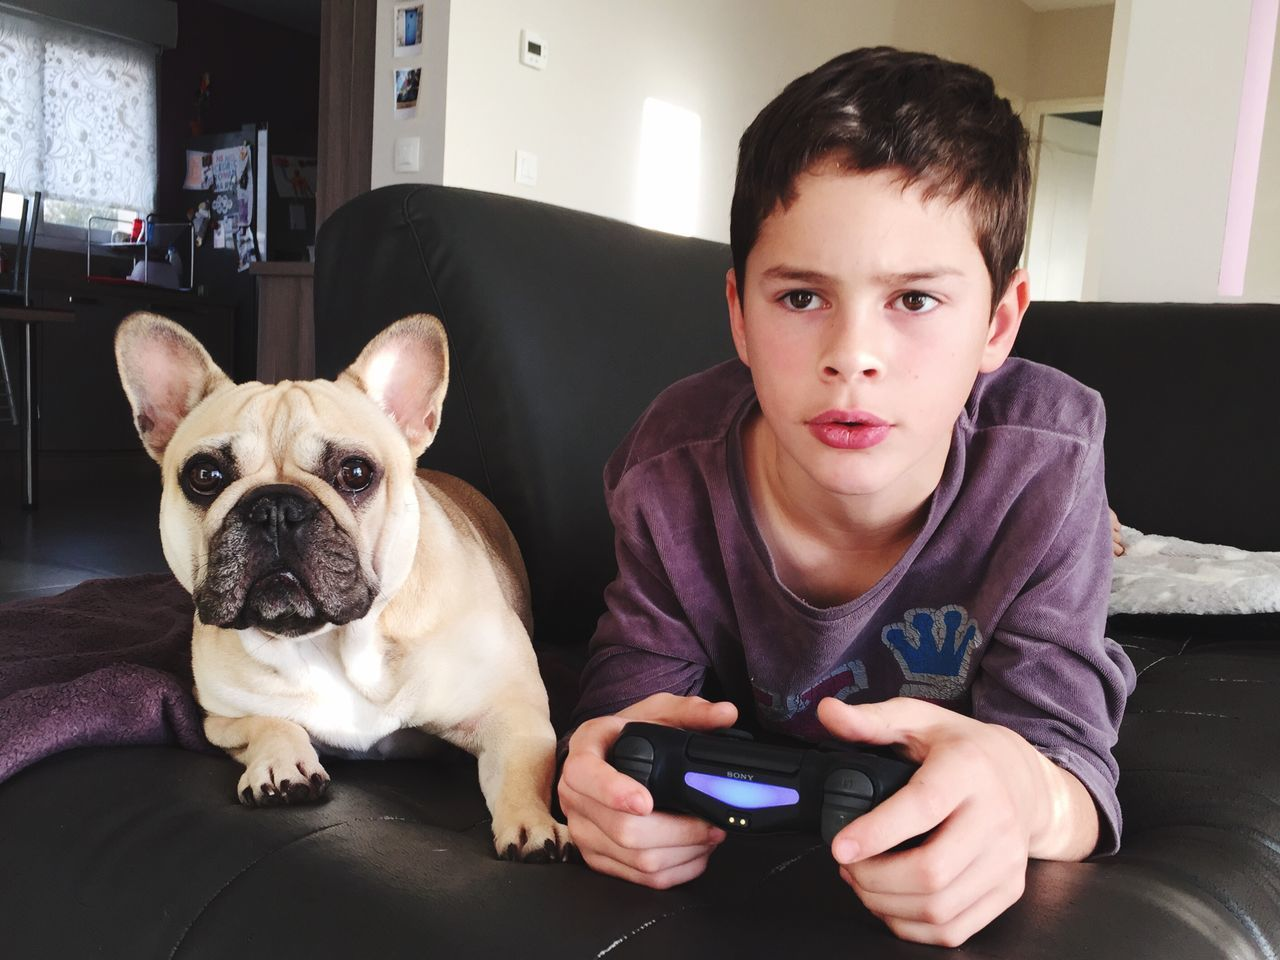 Pets Dog One Animal Lifestyles Domestic Animals Animal Themes Boys Looking At Camera Home Interior Indoors  Front View Portrait Childhood Real People One Person Wireless Technology Leisure Activity Technology Sitting Domestic Life Frenchbulldog Duet Friendship